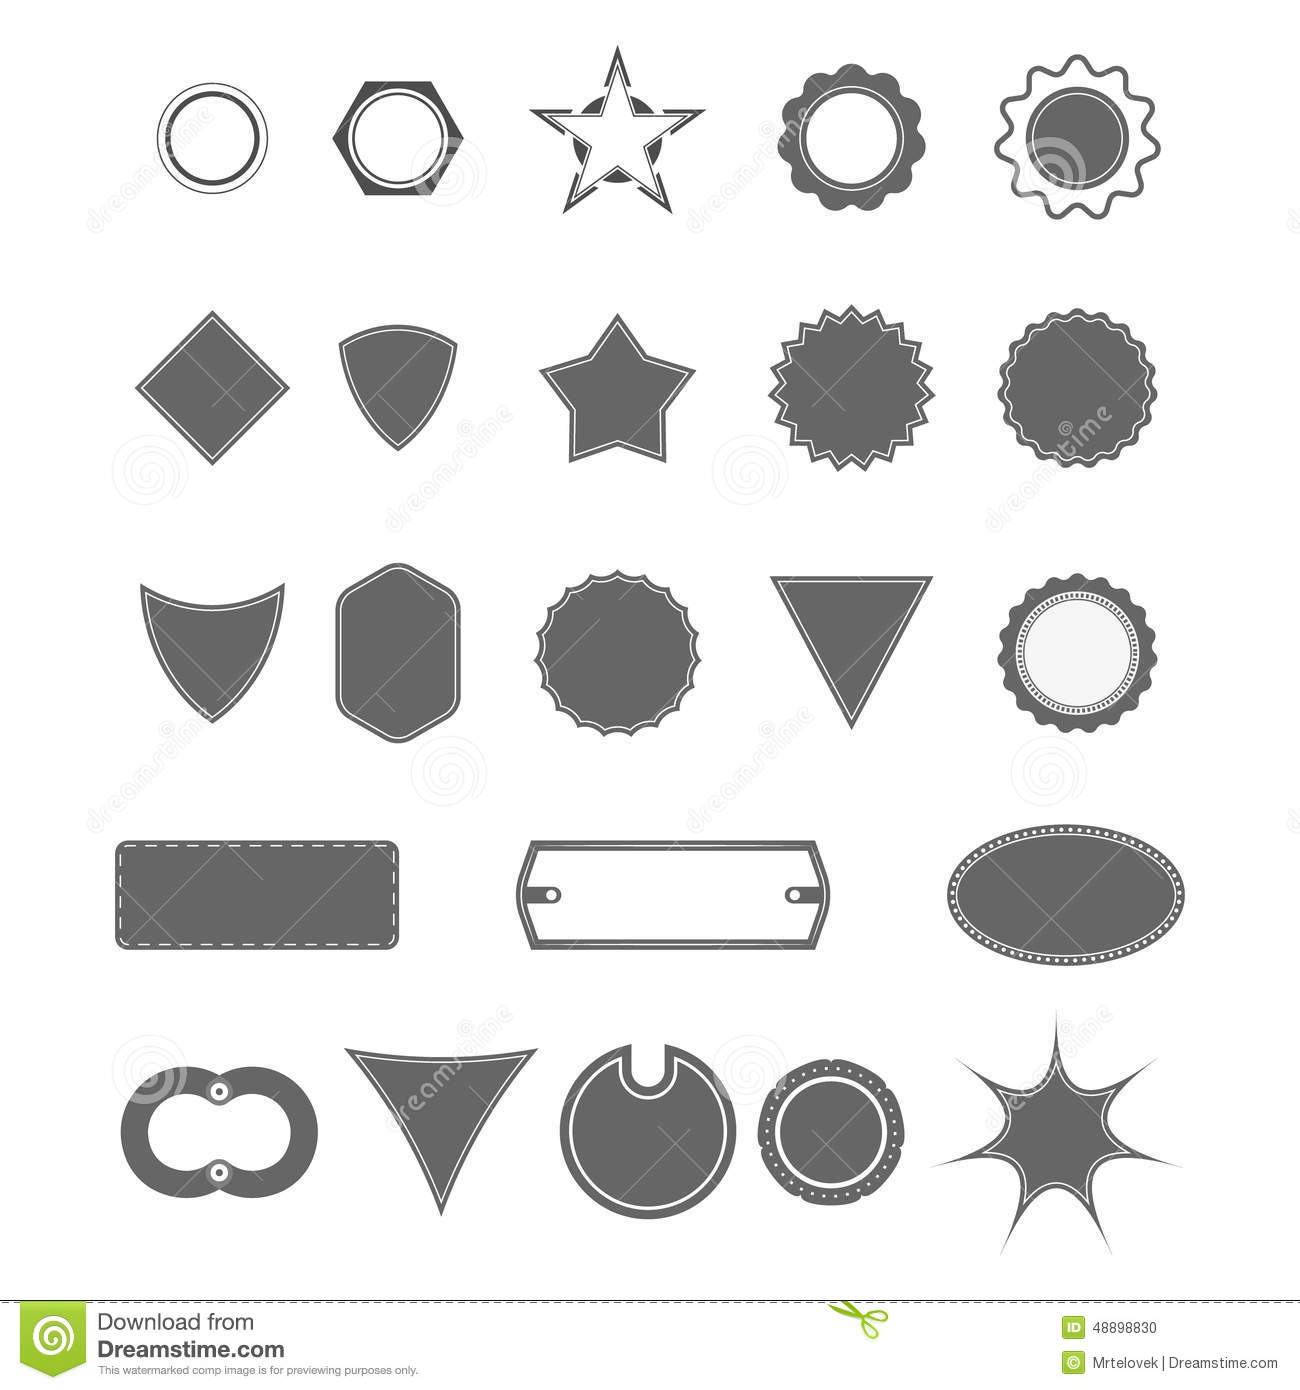 retro shapes images reverse search